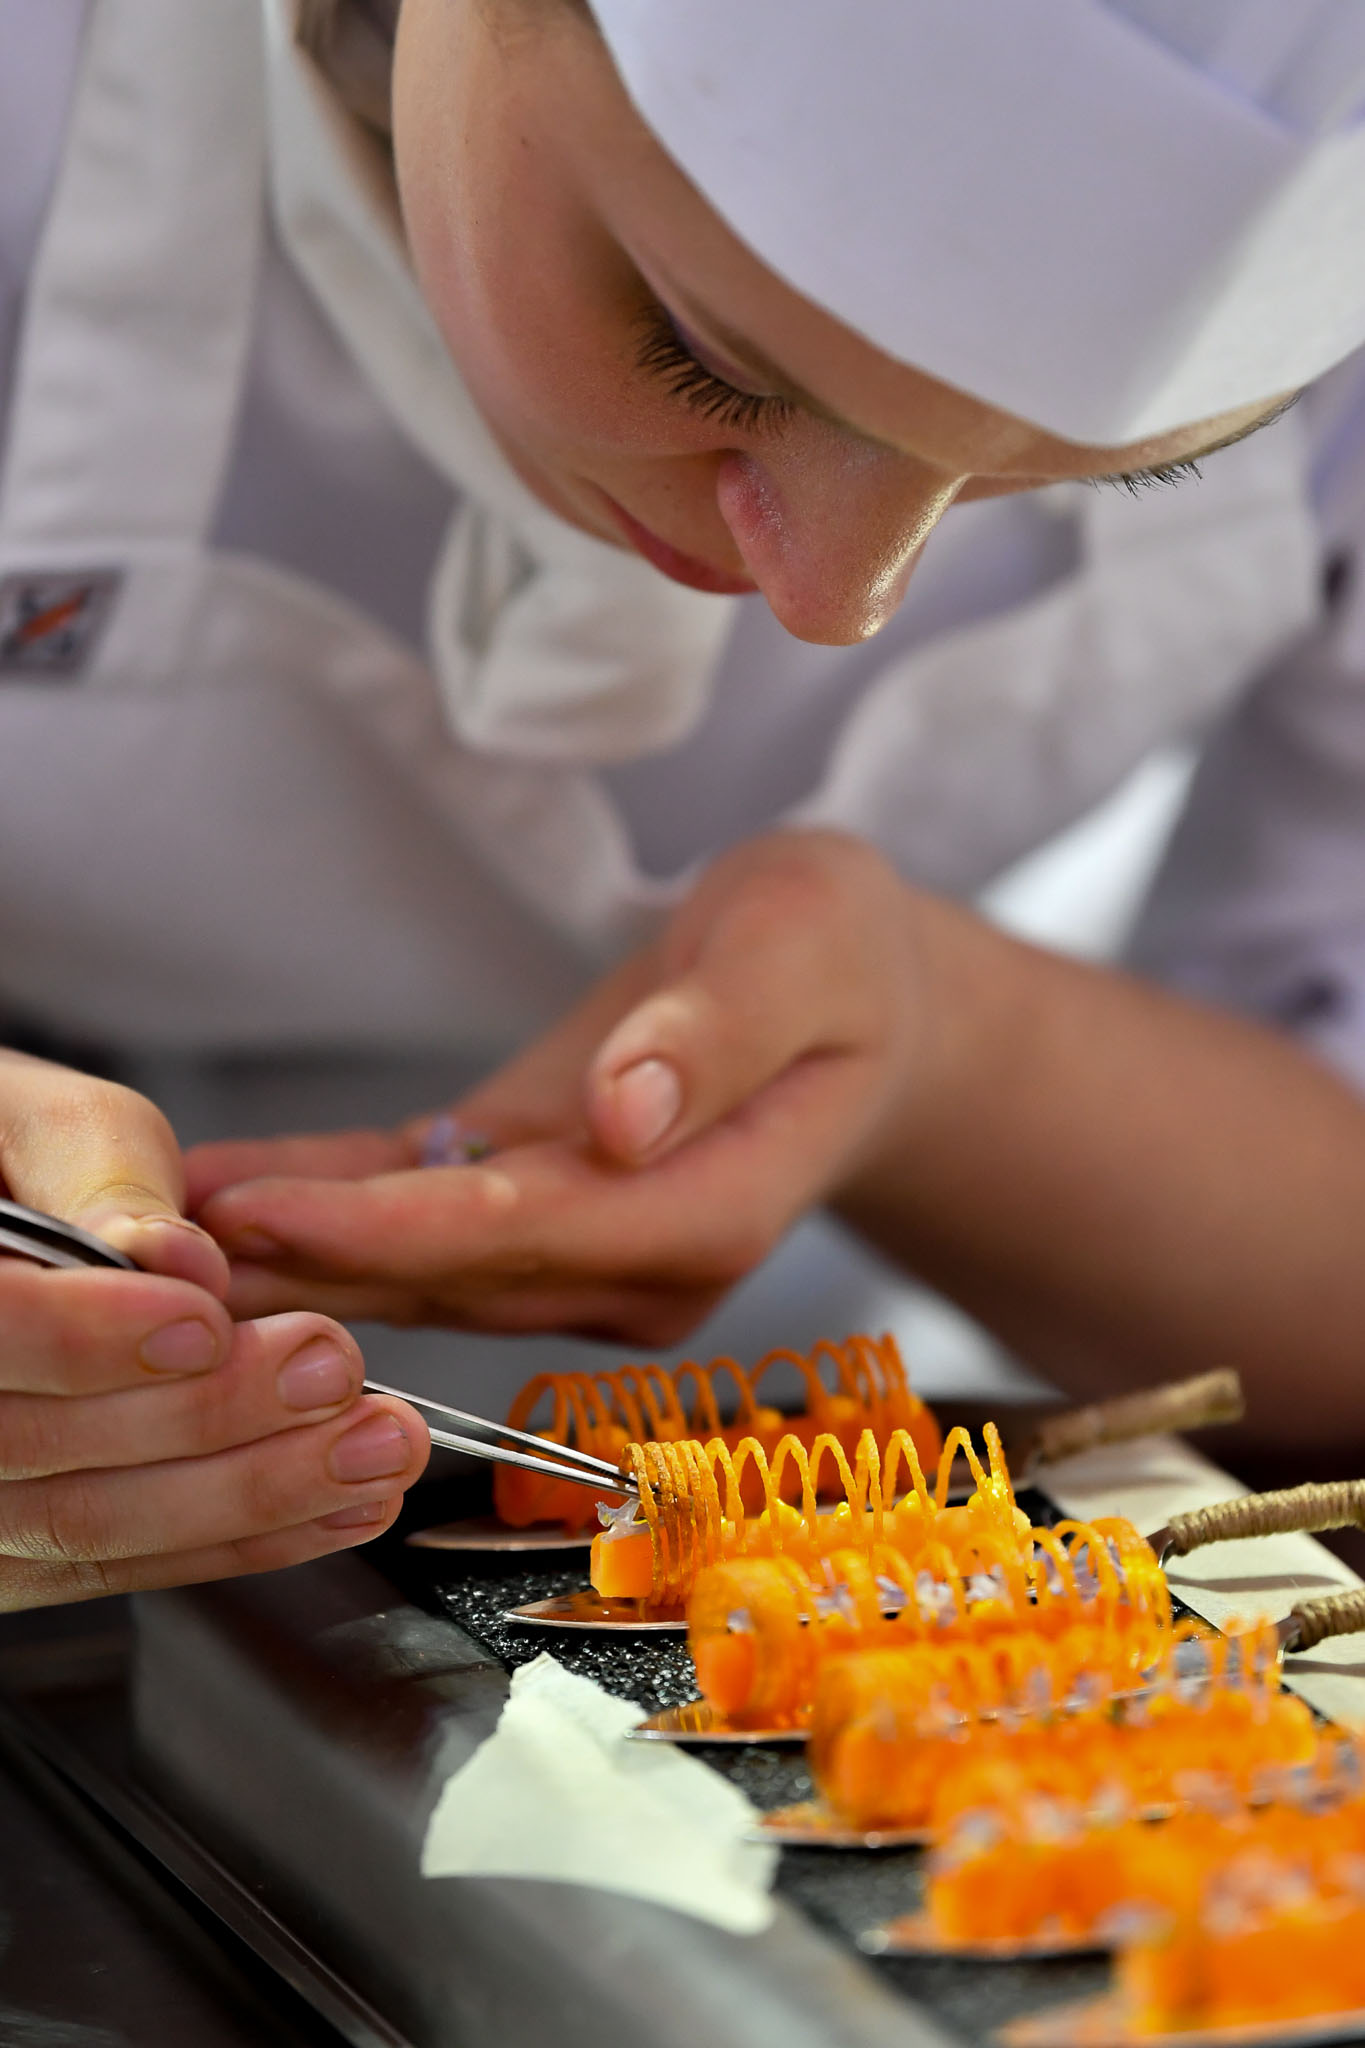 Melbourne, 30 May 2017 - Laura Skvor commis chef assisting Michael Cole of the Georgie Bass Café & Cookery in Flinders prepares a garnish for the meat platter at the Australian selection trials of the Bocuse d'Or culinary competition held during the Food Service Australia show at the Royal Exhibition Building in Melbourne, Australia. Photo Sydney Low